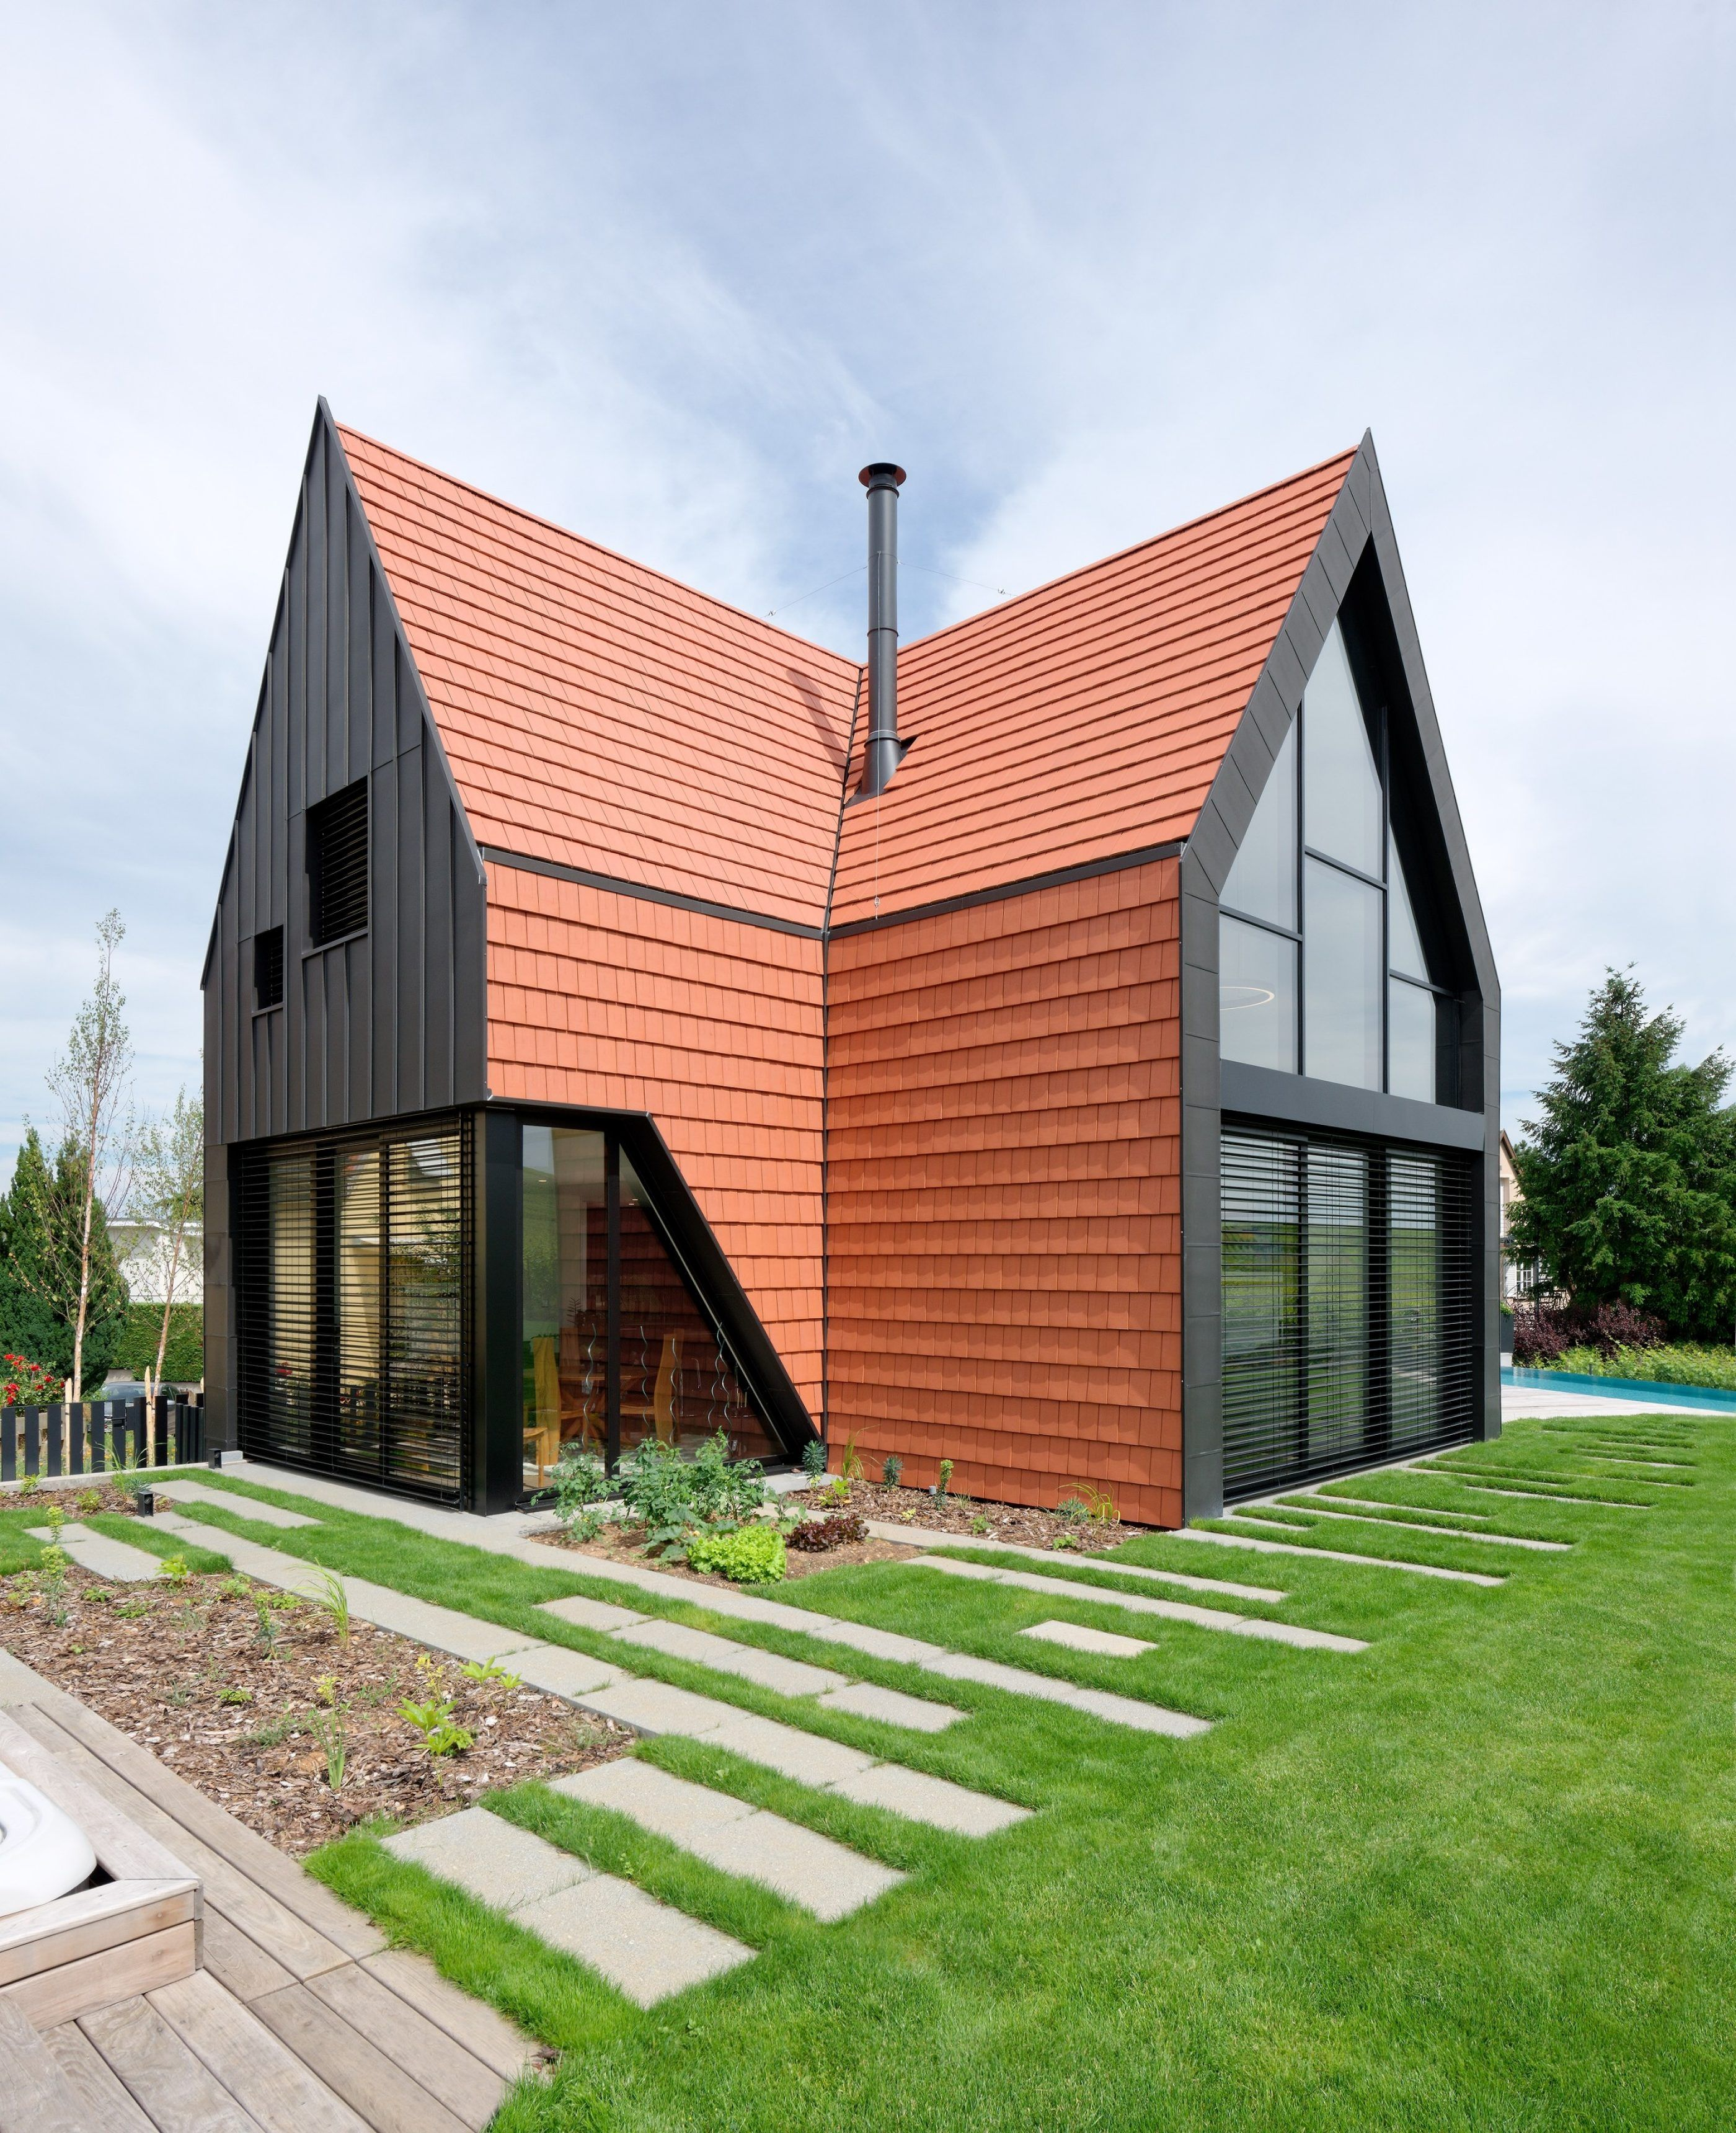 A Perfect Whole In 2020 Terracotta Roof House Red Roof House Roof Architecture